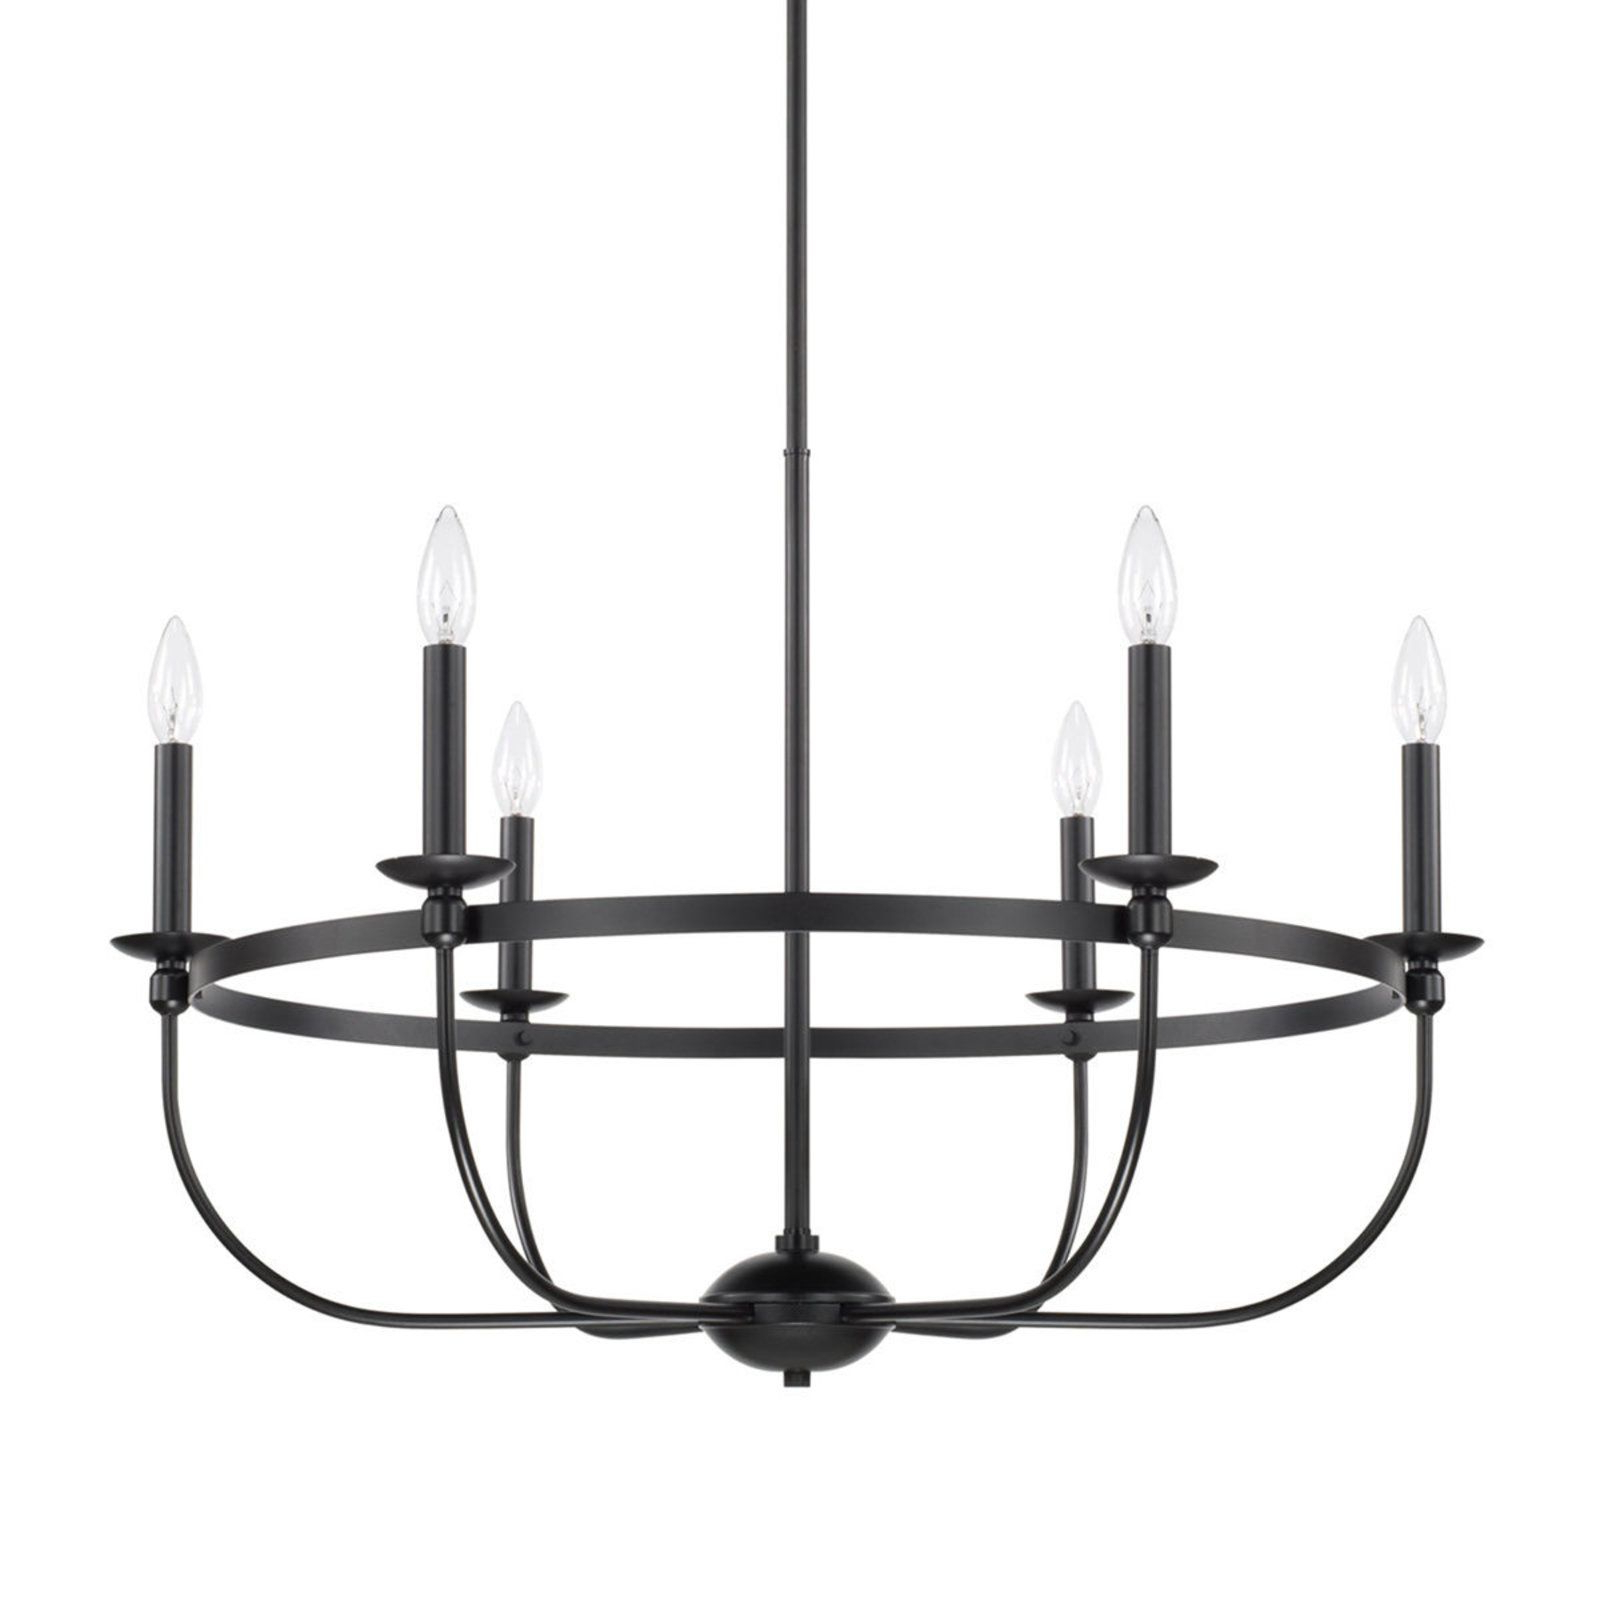 Hamza 6 Light Candle Style Chandeliers Intended For 2019 Simply Black Basket Chandelier – 6 Light In 2019 (Gallery 6 of 25)